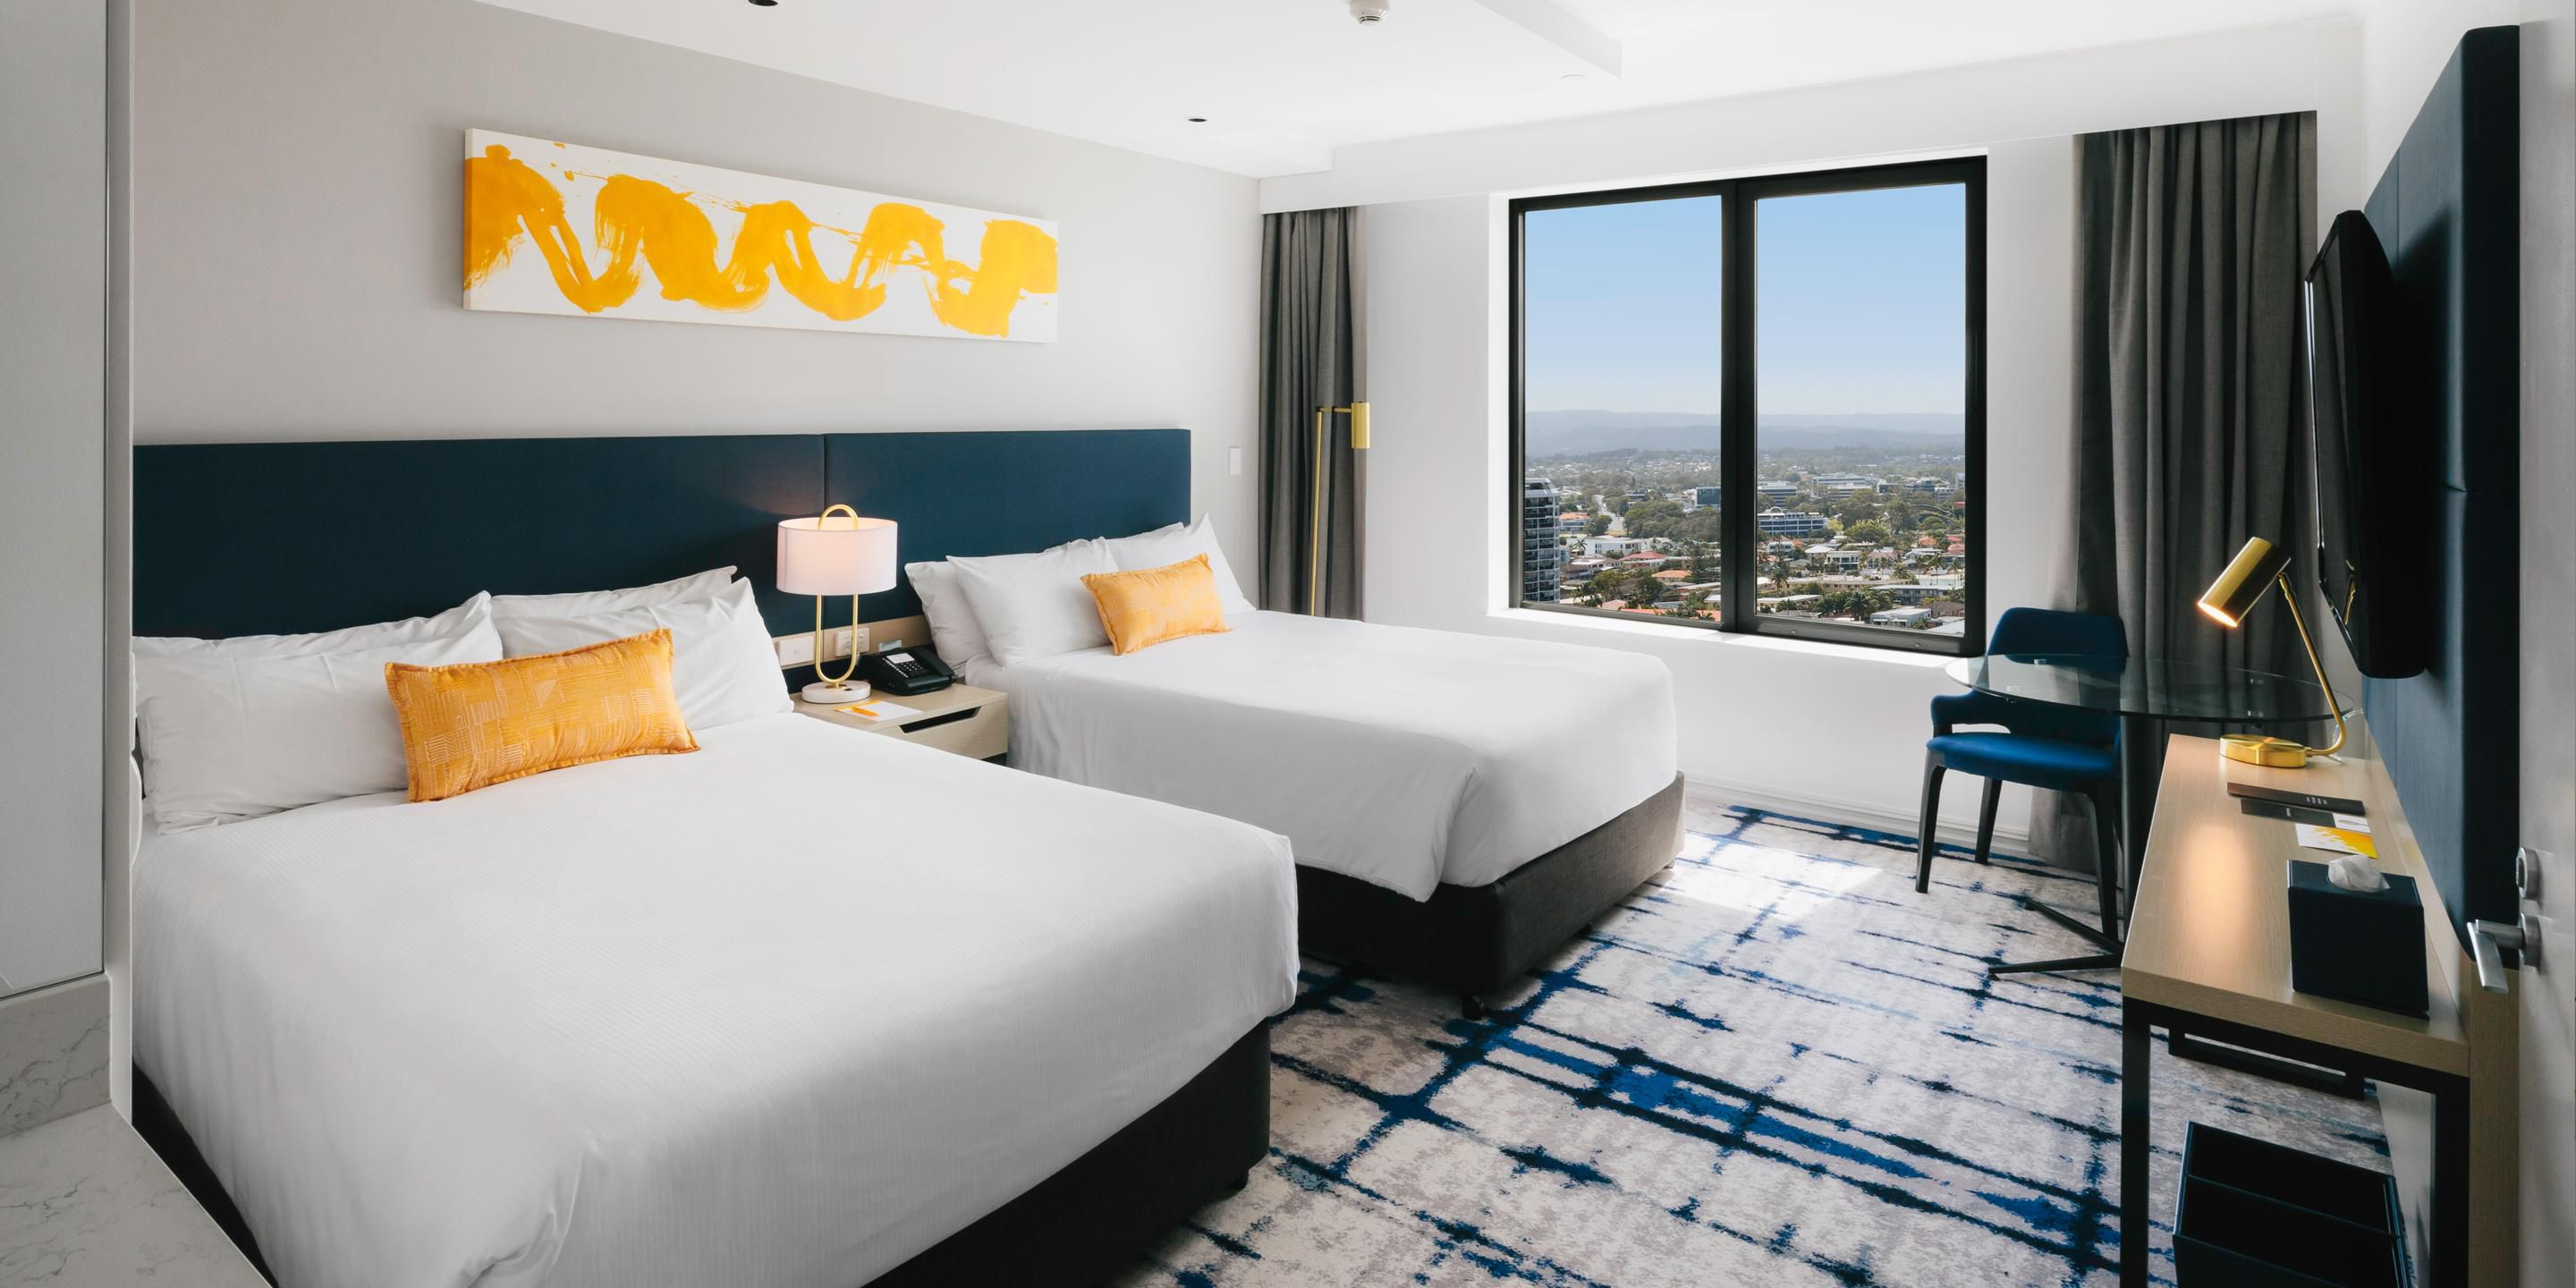 Deluxe room twin beds with hinterland view